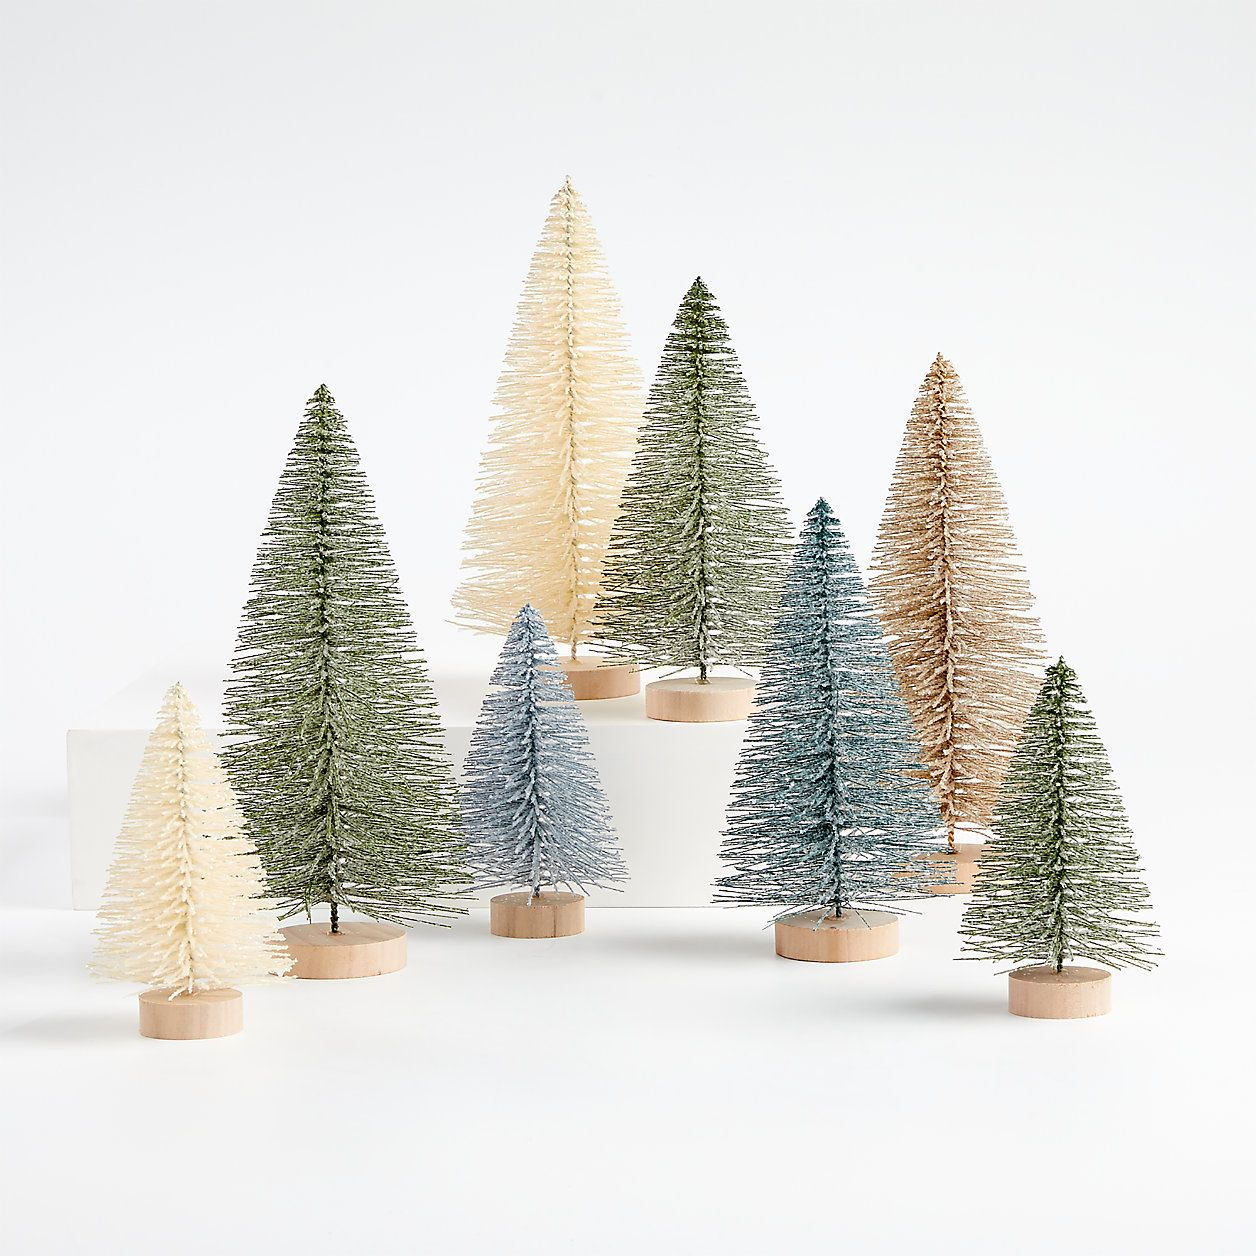 Sage And Silver Bottle Brush Christmas Trees Set Of 8 Reviews Crate And Barrel In 2020 Bottle Brush Christmas Trees Contemporary Christmas Decor Coastal Christmas Decor